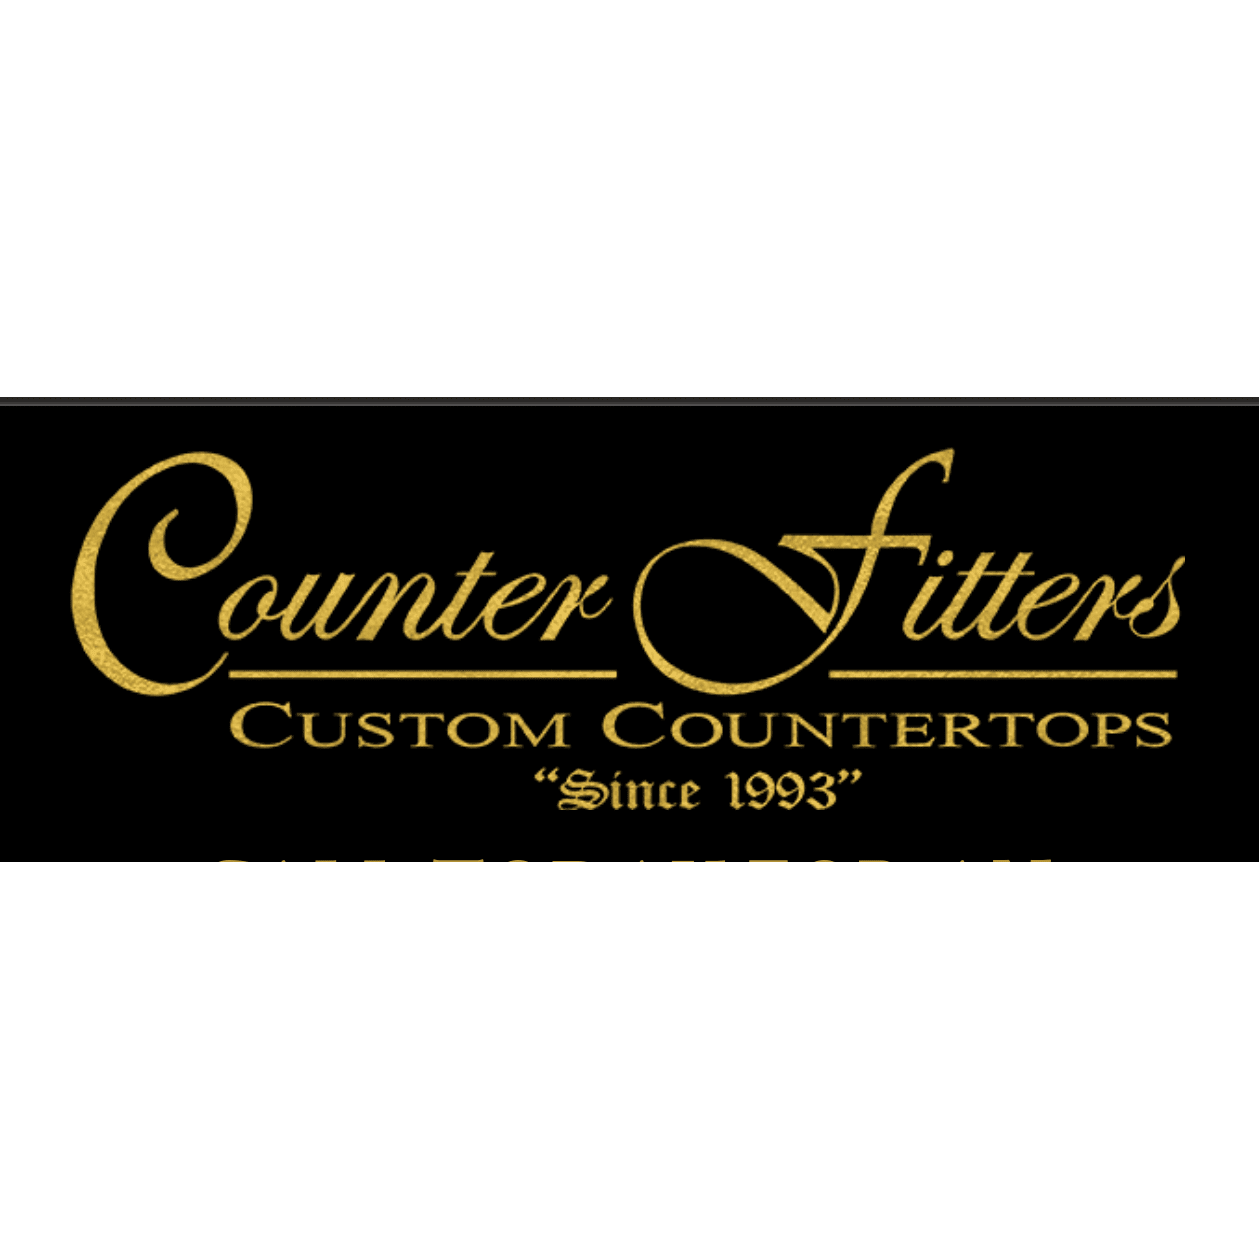 Counter Fitters